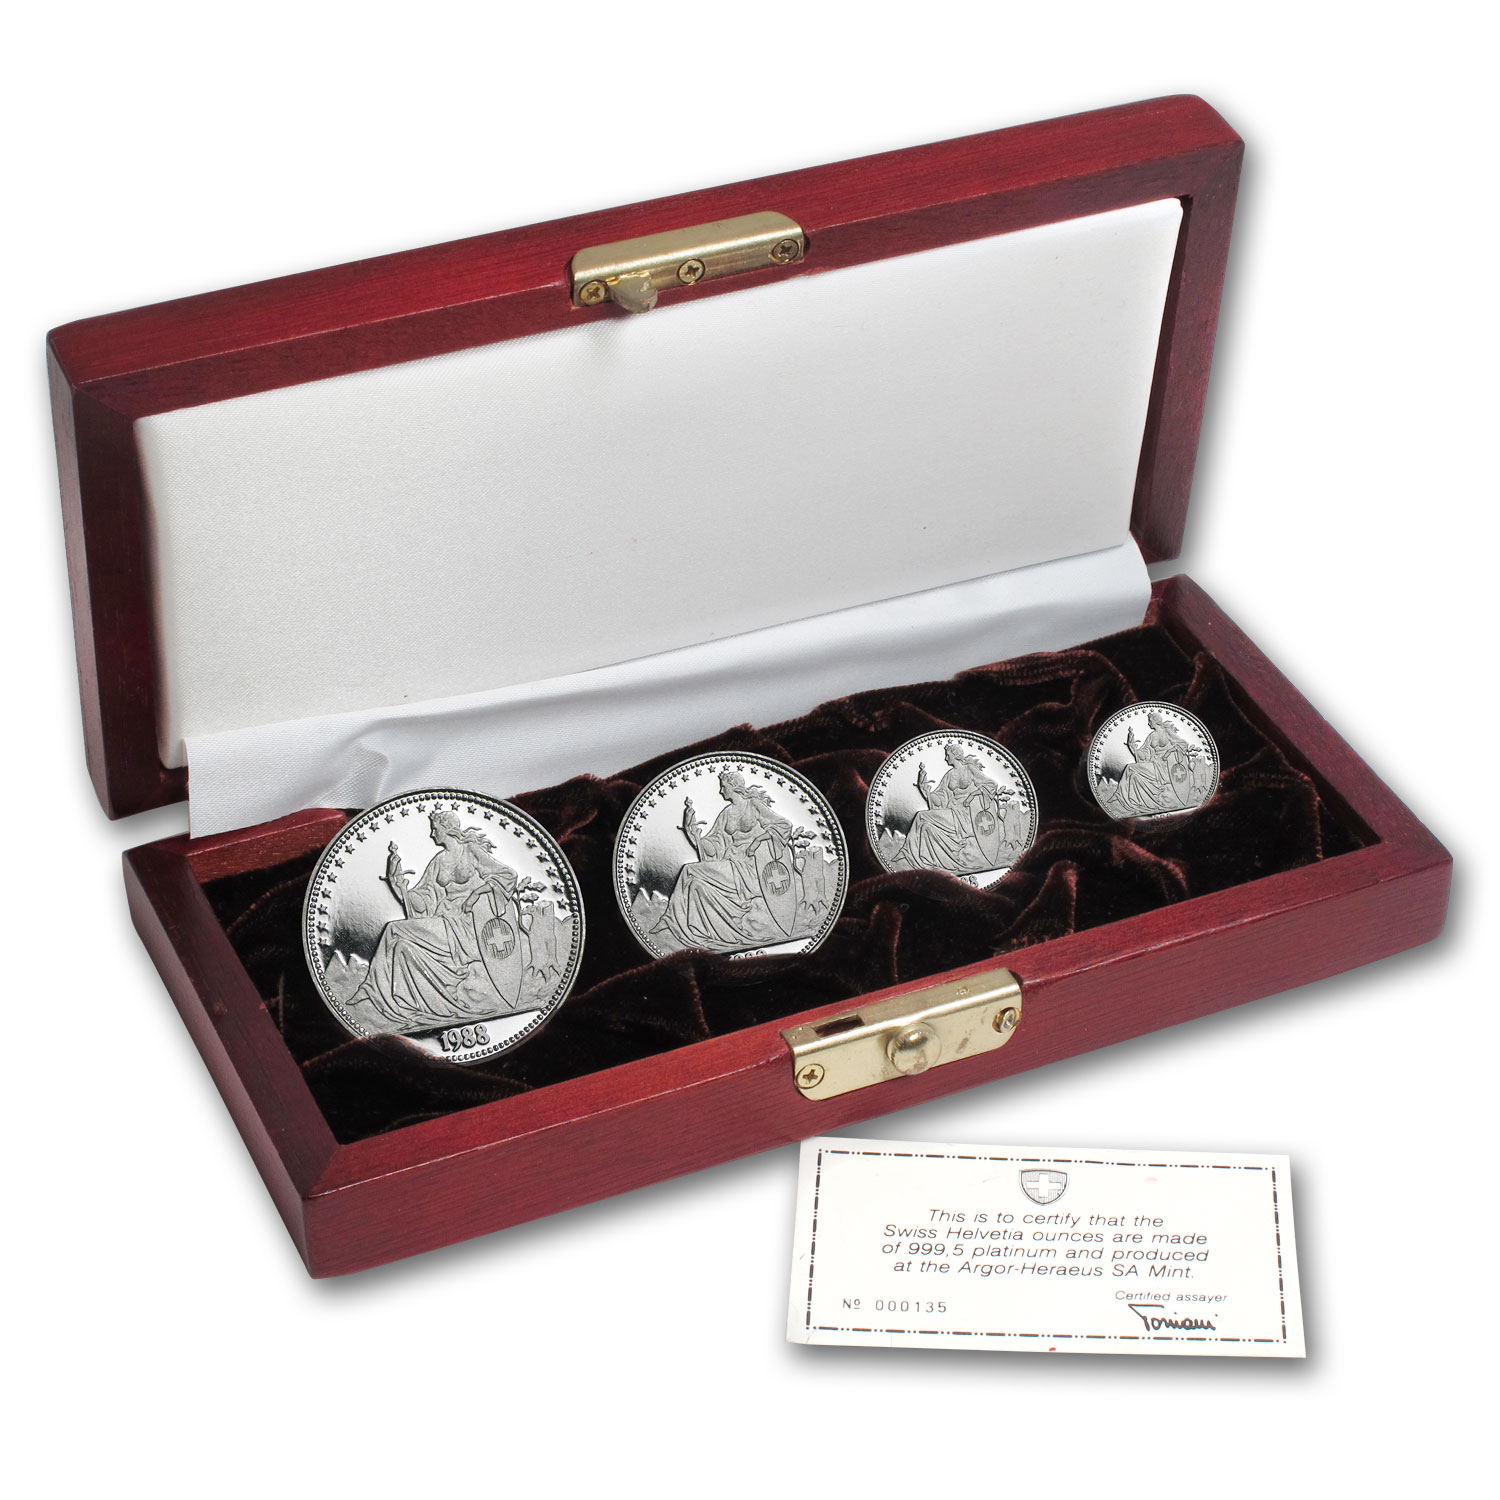 1988 Switzerland 4-Coin Proof Platinum Lucerne Set (1.85 oz)